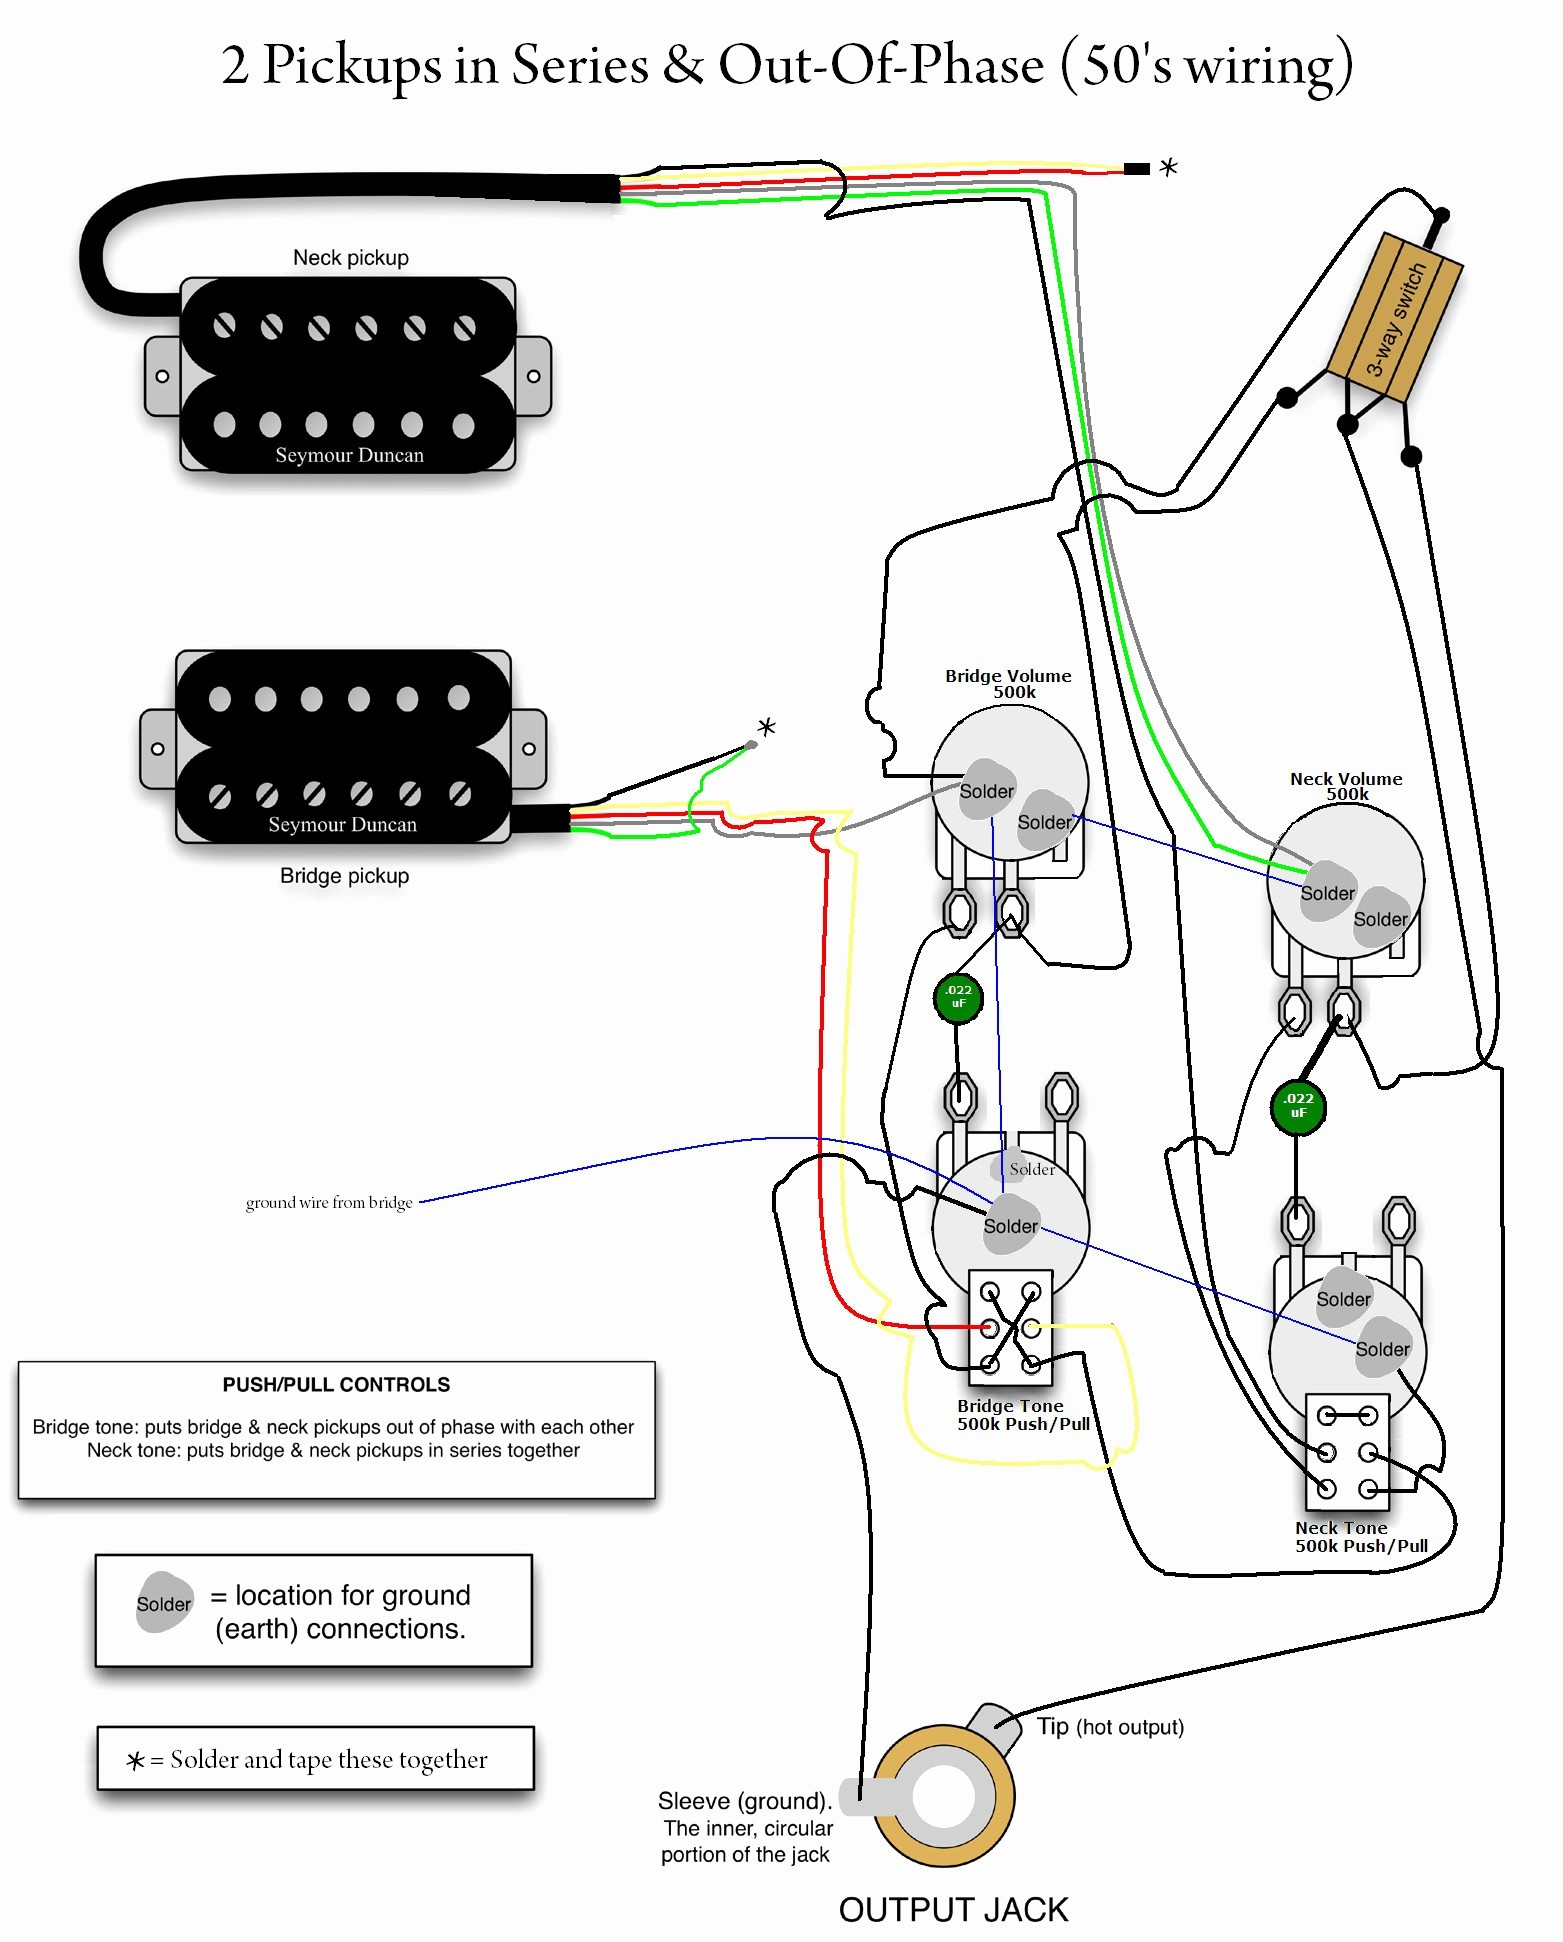 epiphone les paul wiring schematic Collection-Wiring Diagram for EpiPhone Les Paul Guitar Save Wiring Diagram for 3 Pickup Les Paul Save 5-j